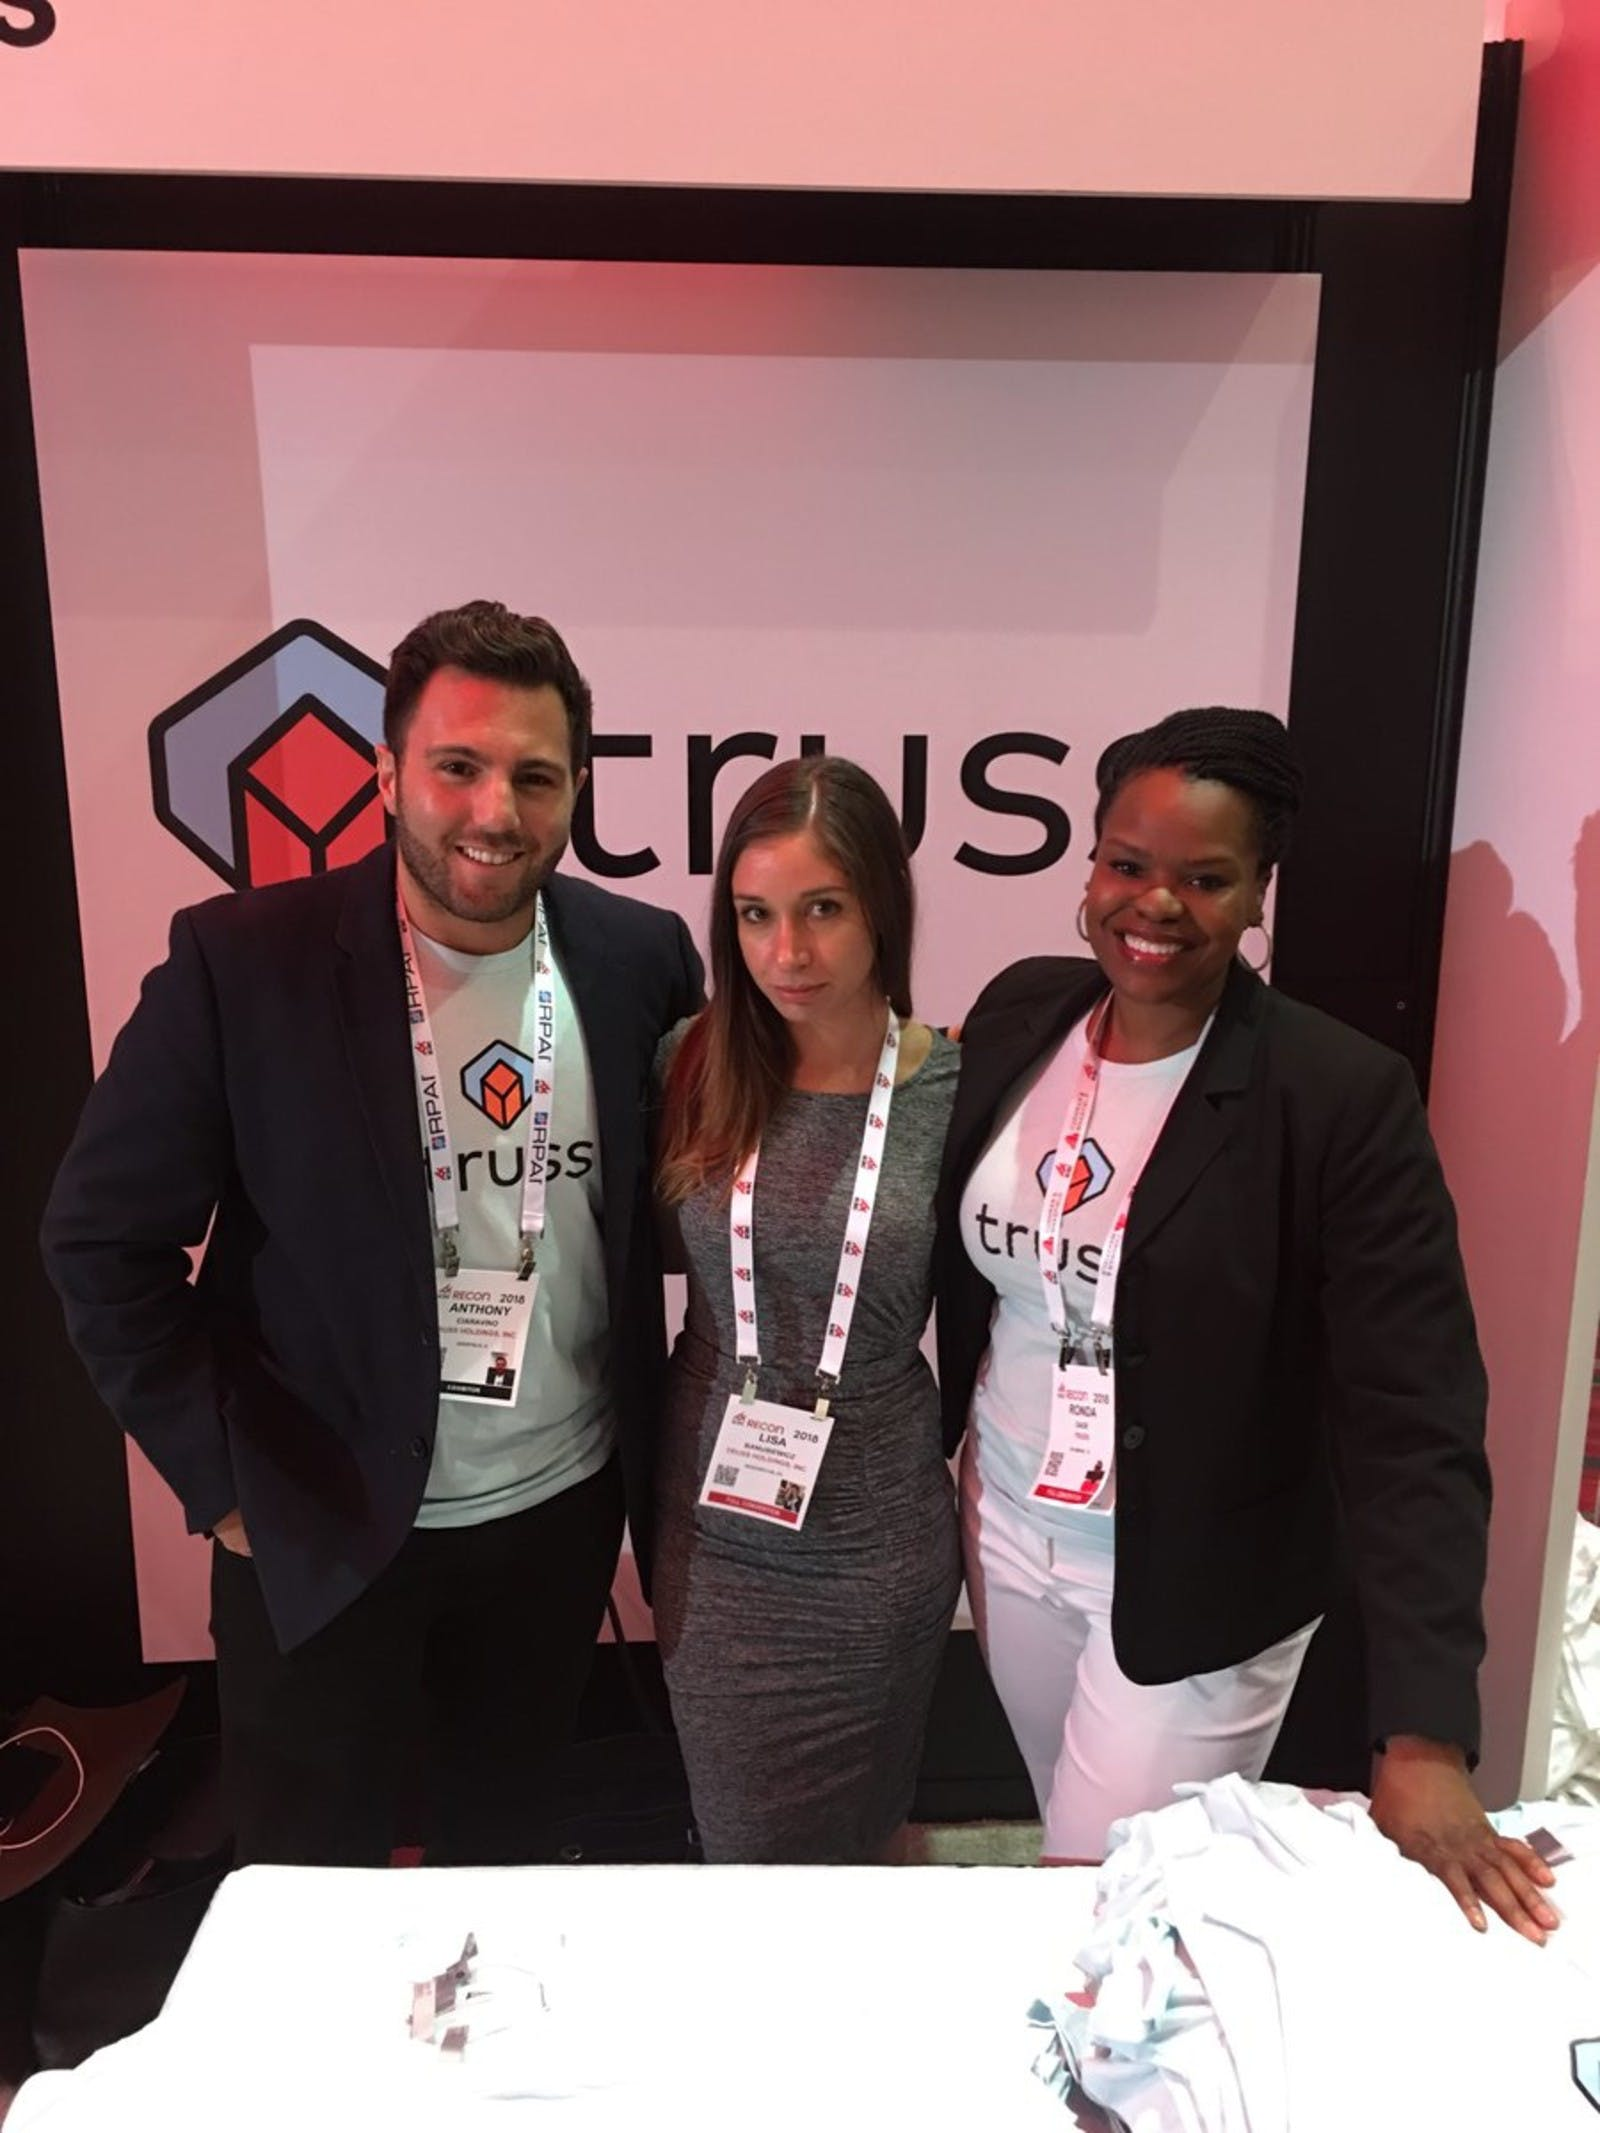 Truss team members at ICSCRECon in Las Vegas standing in front of a Truss logo banner